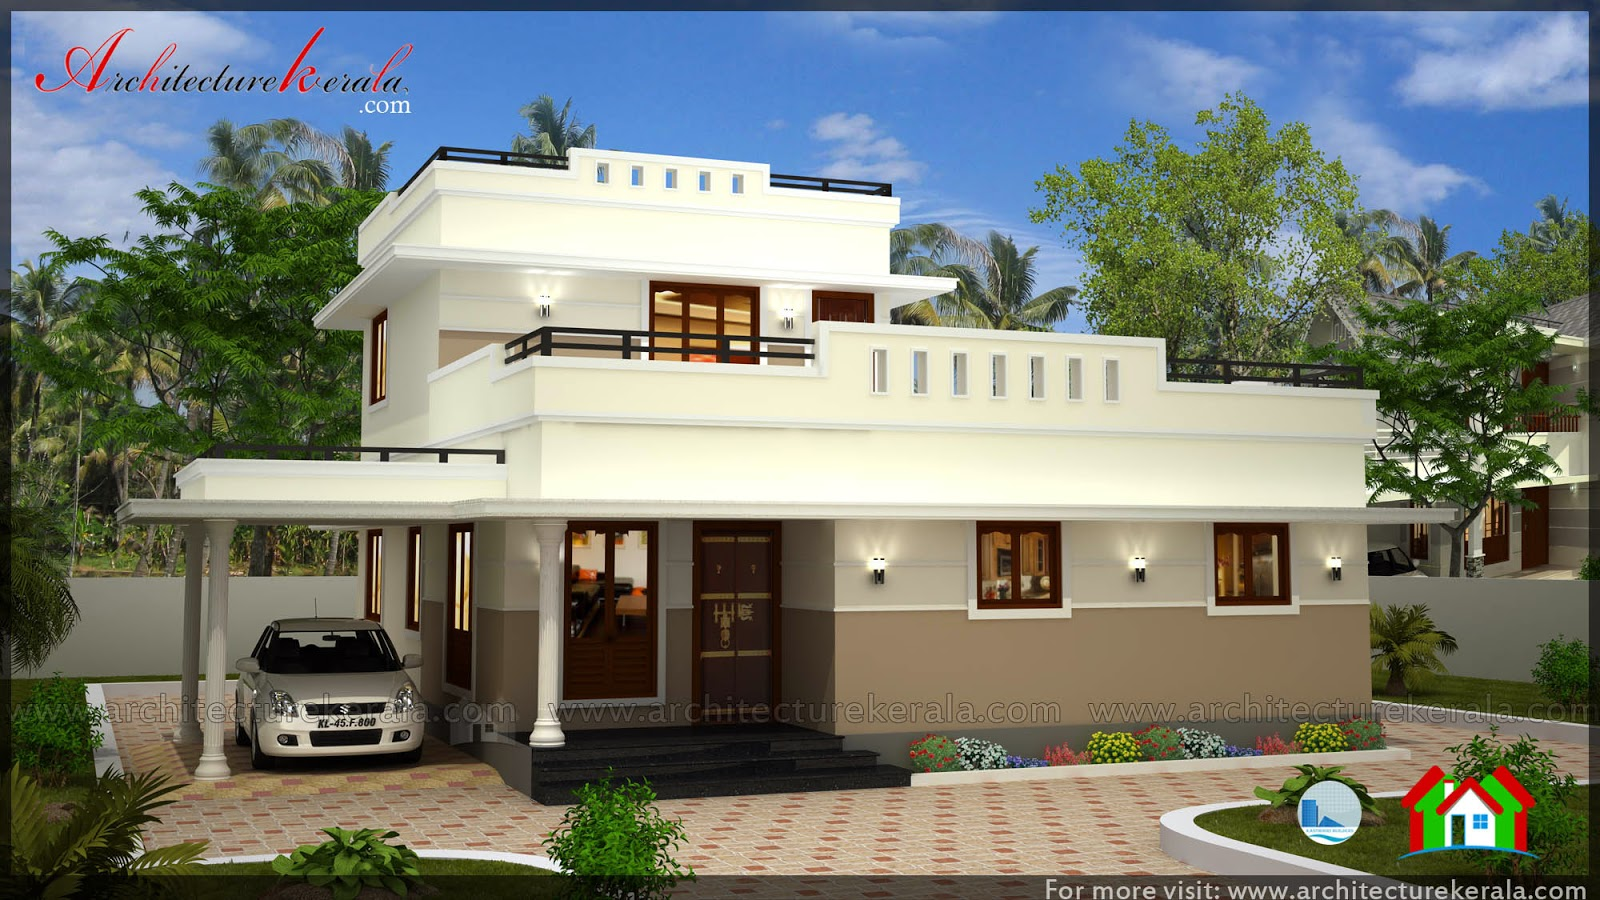 Low cost 3 bedroom kerala house plan with elevation free for Low cost kerala veedu plans